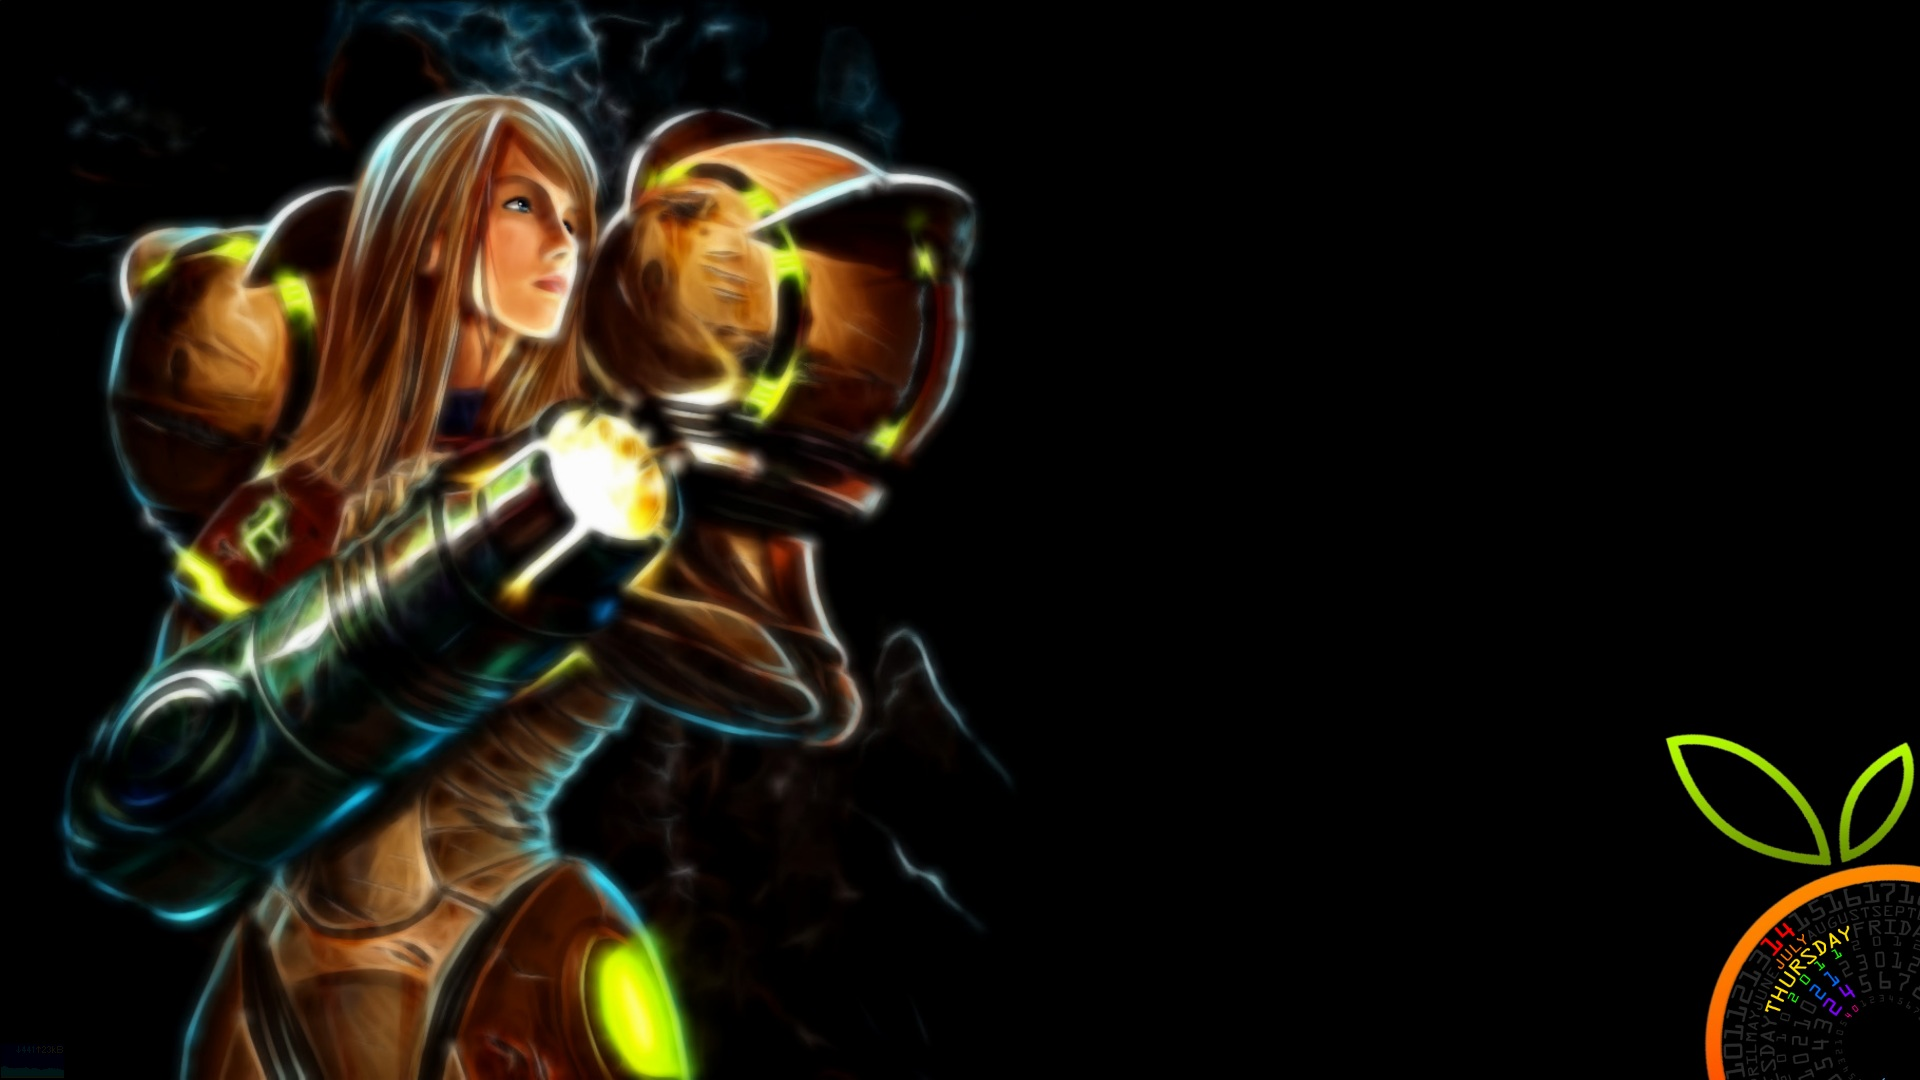 Samus Aran Metroid Wallpapers Hd Free 1920x1080px